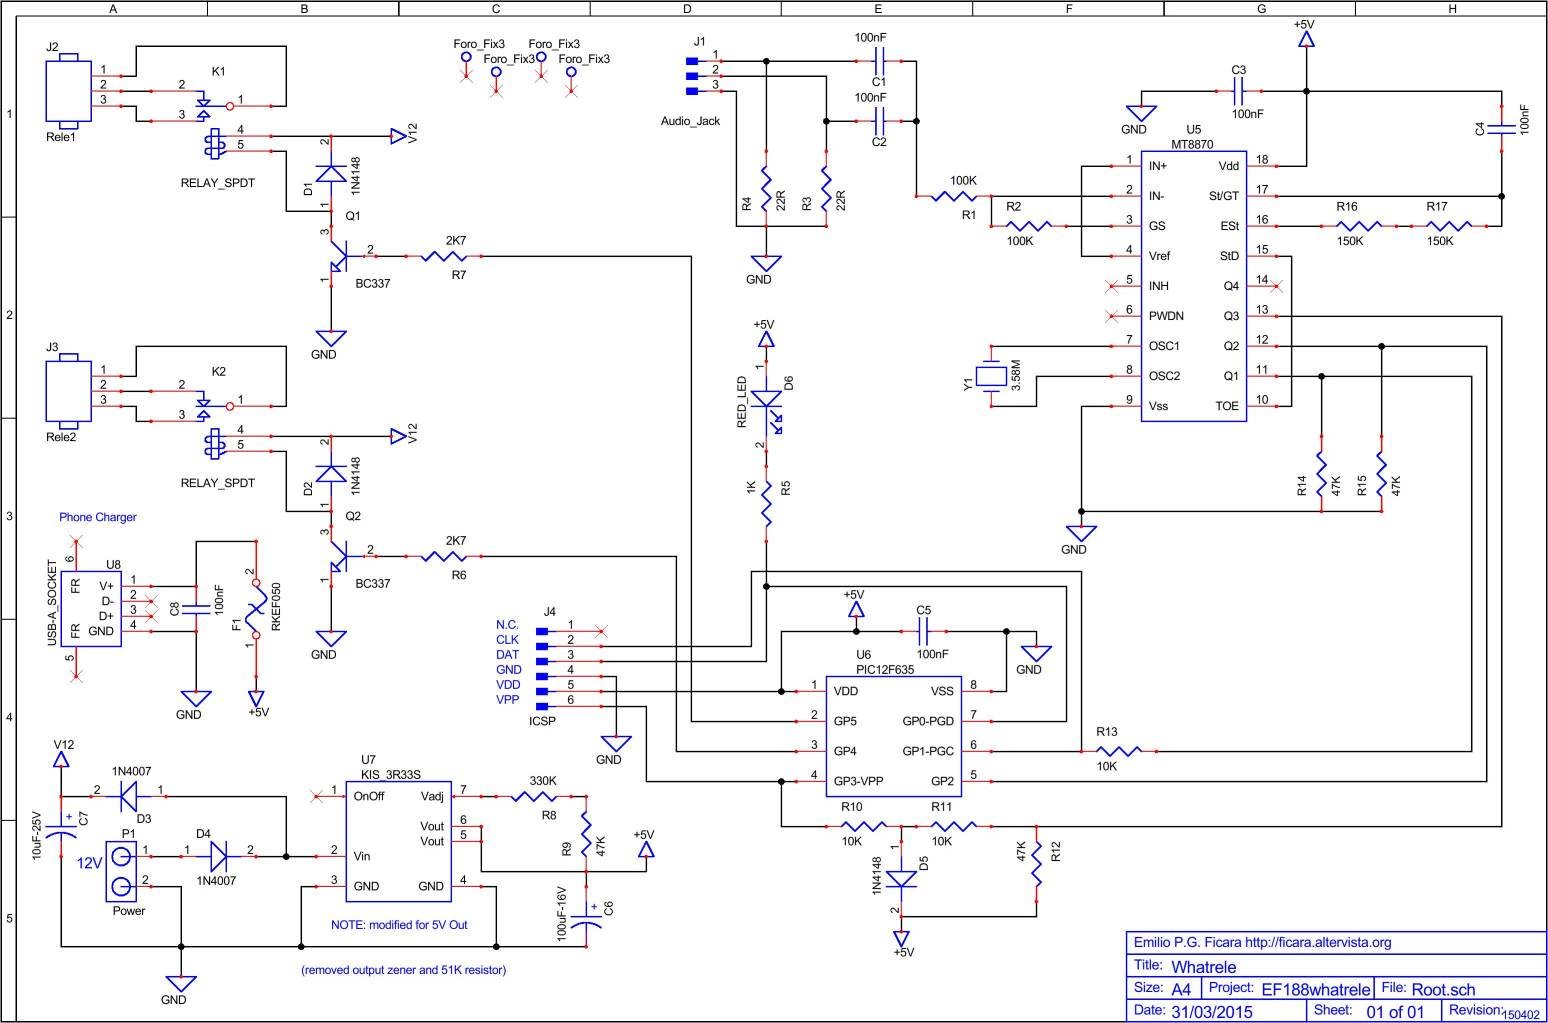 dtmf decoder ic mt8870 pin diagram single pole switch with pilot light wiring relays on off whatsapp messages emilio